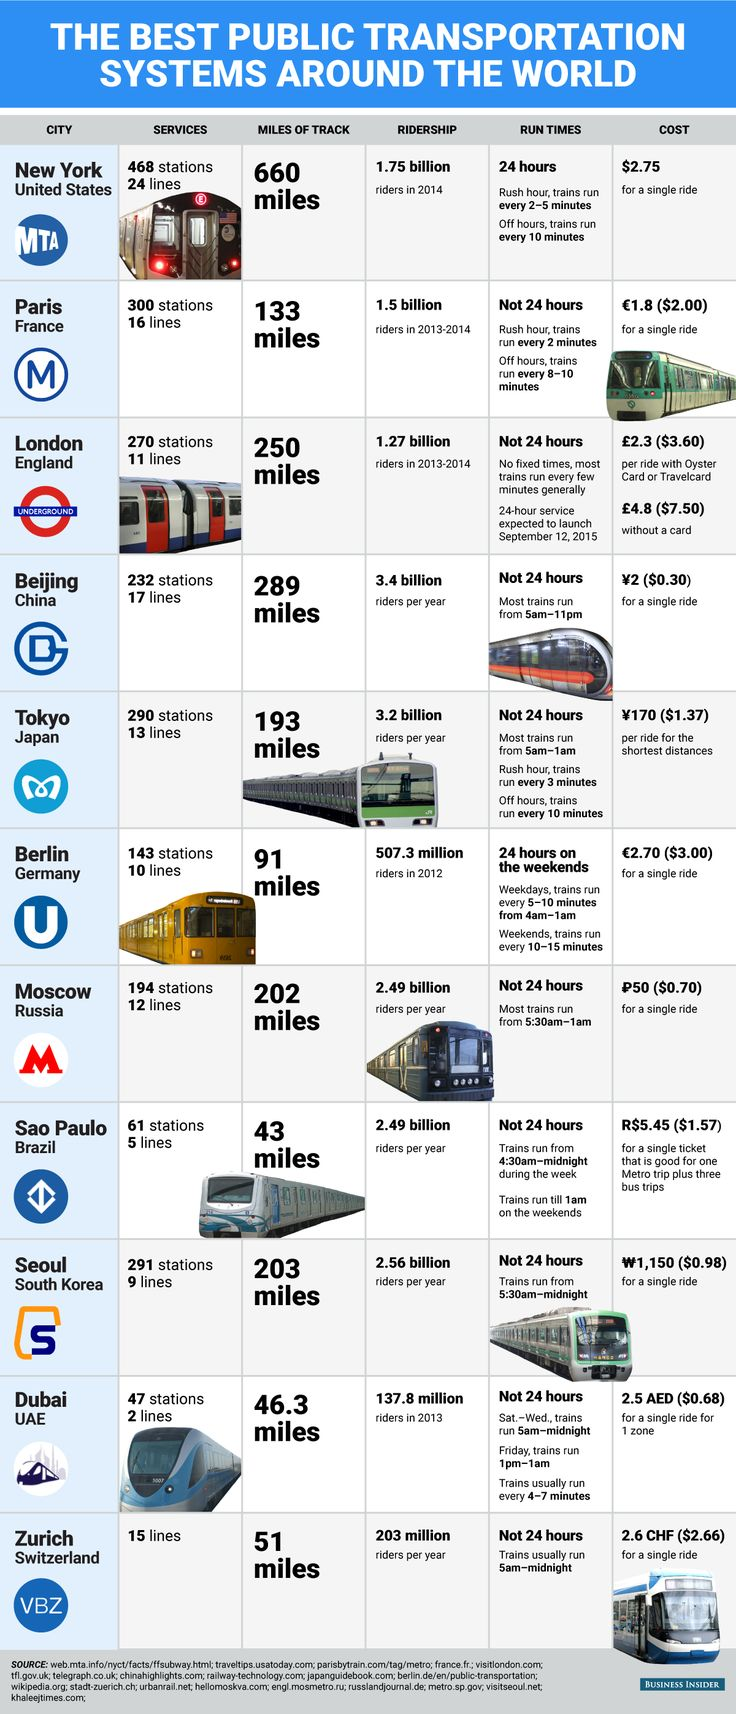 The Best Public Transportation Systems Around the World #infographic #Travel #Transportation